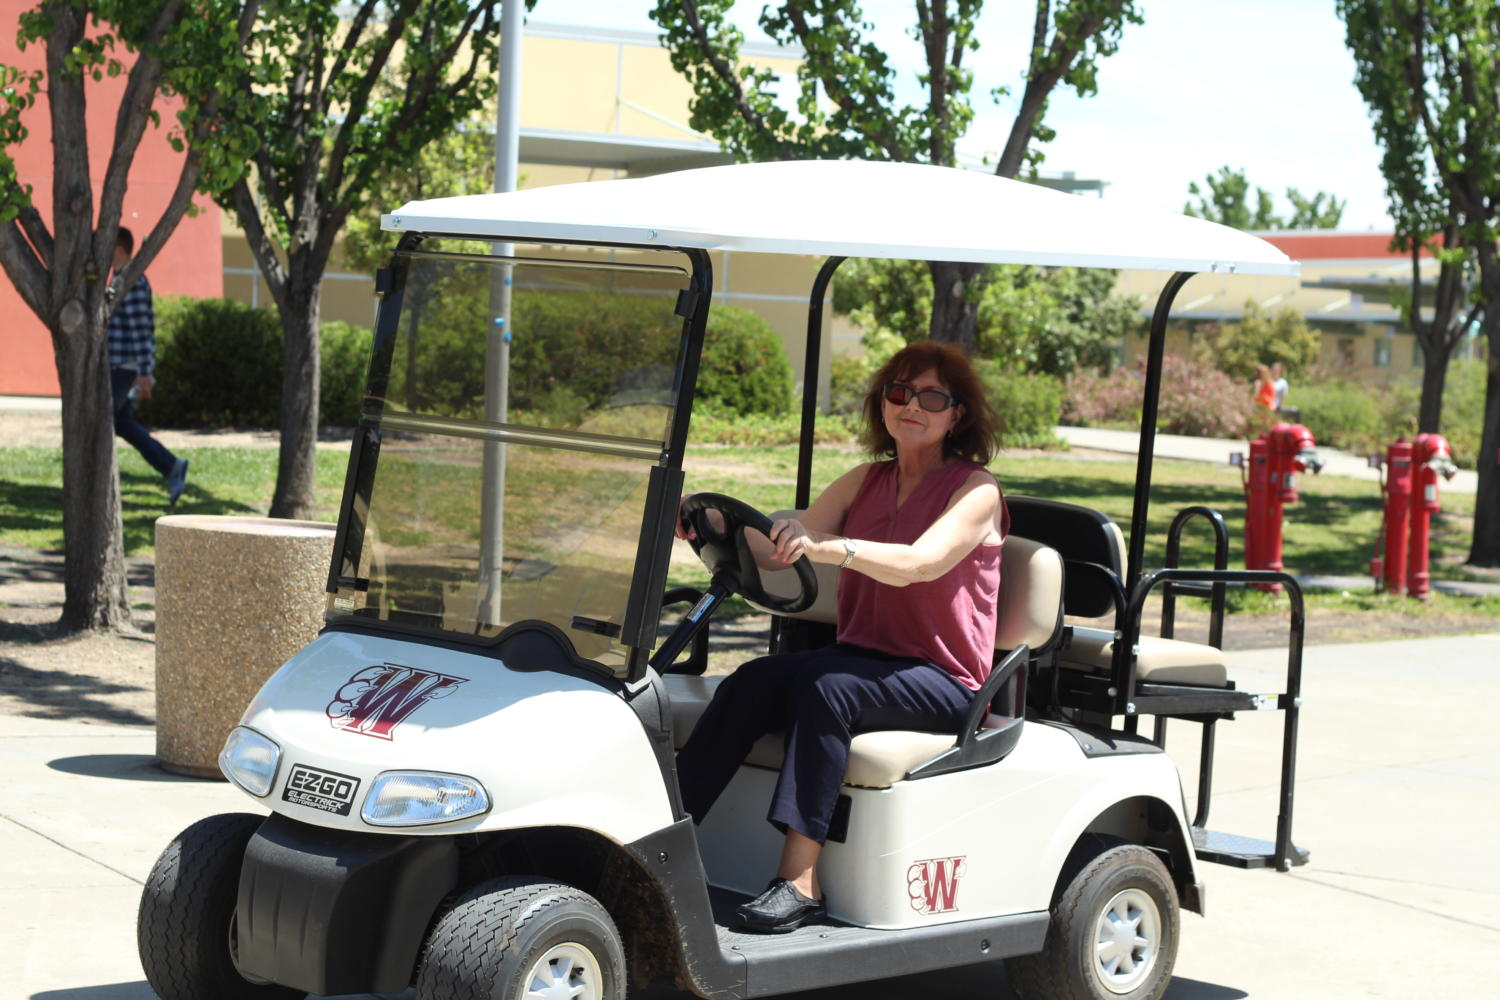 Mrs. Sherry Mauser drives her golf cart around campus at lunch. Photo by Emma Kachmar